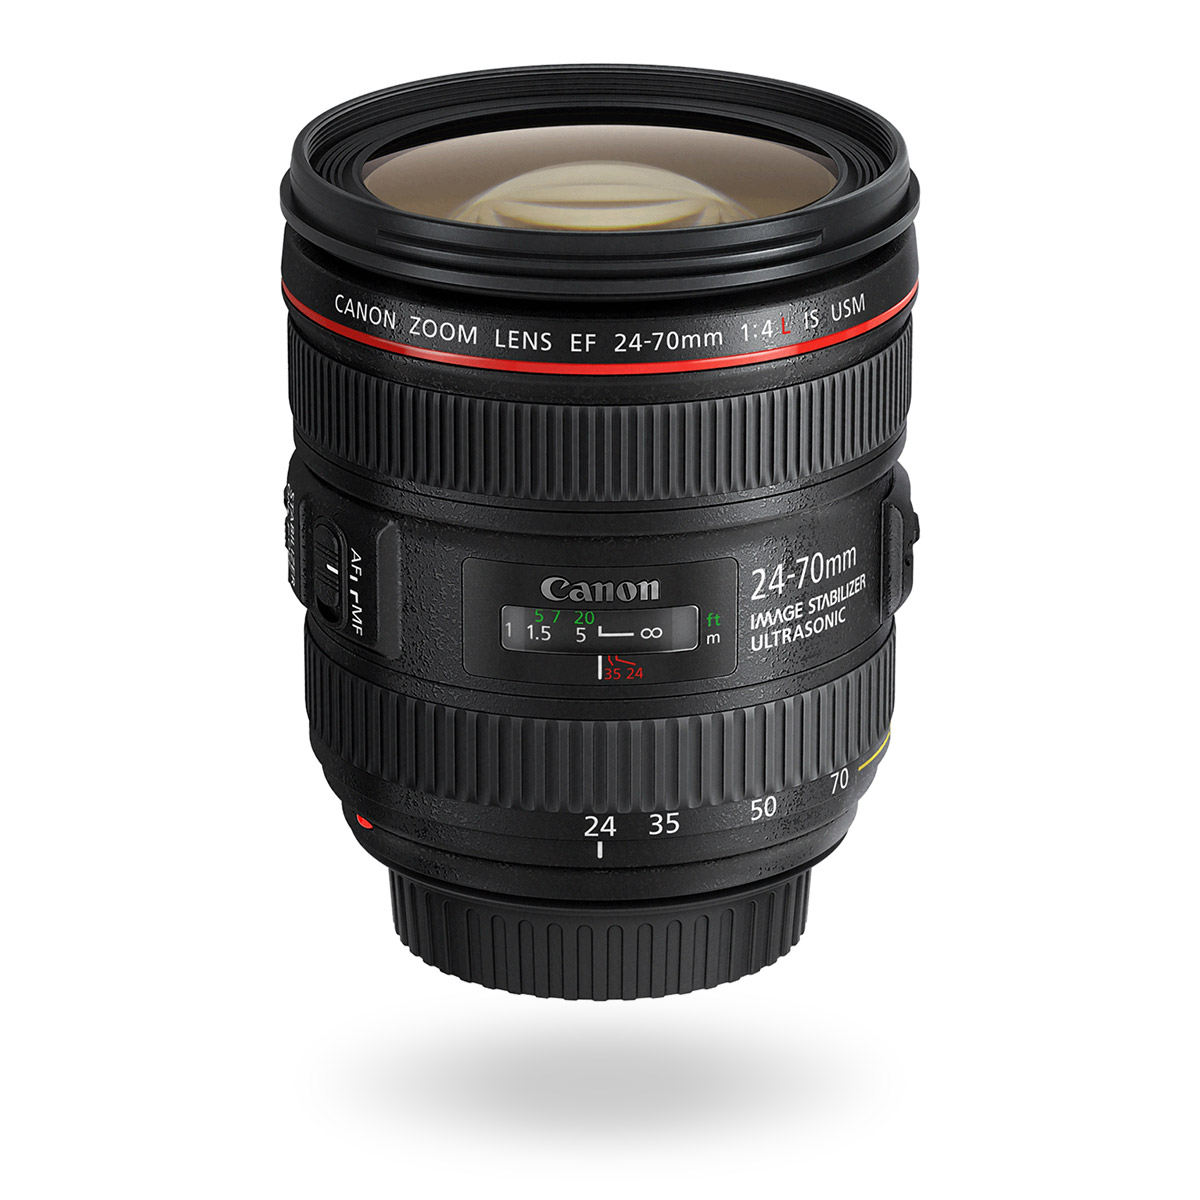 EF 24-70mm f/4L IS USM Lens